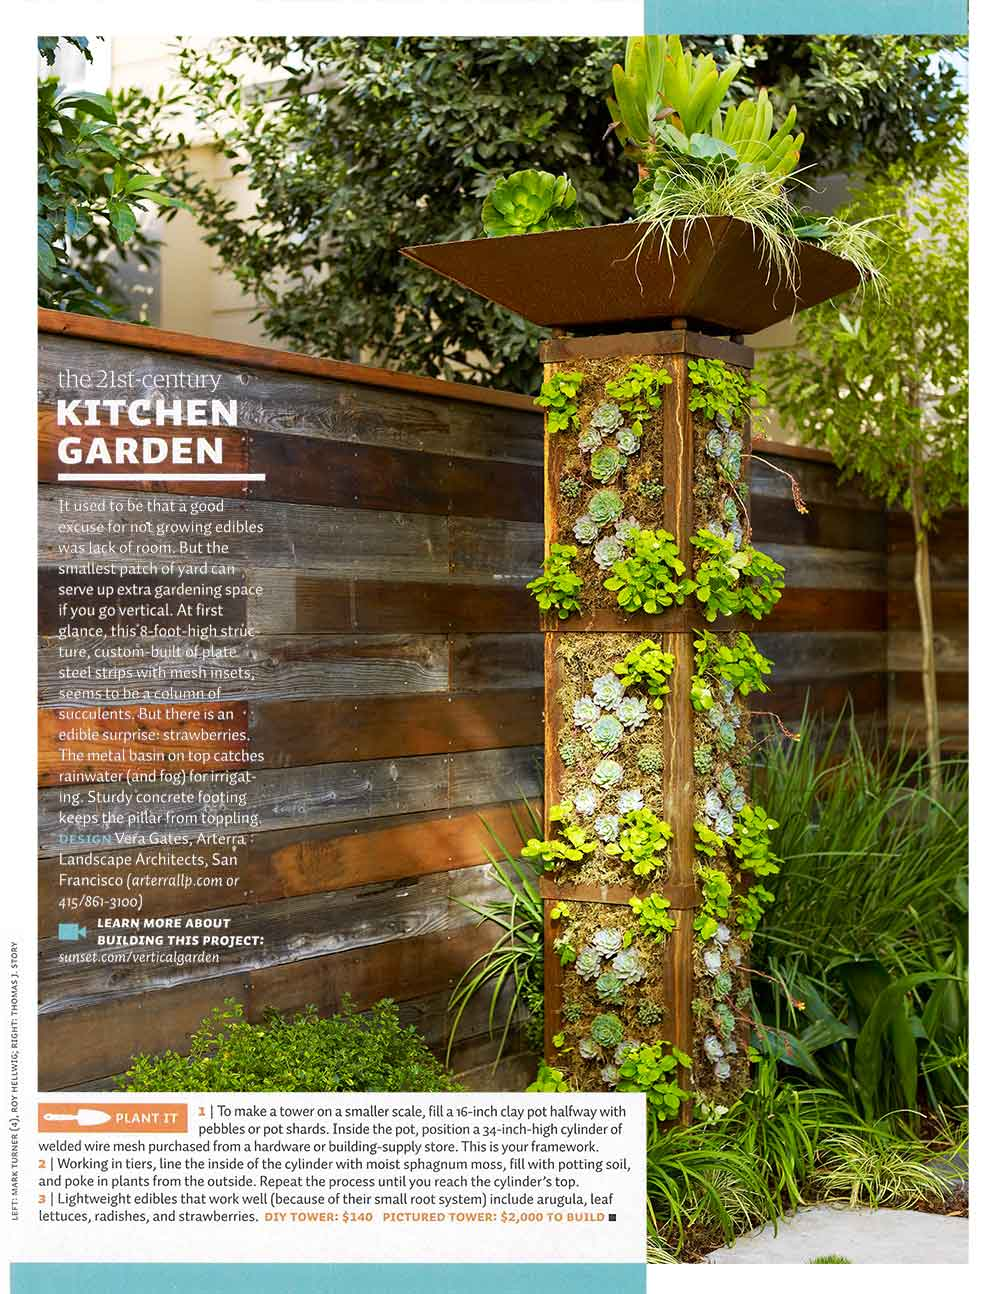 Sunset Magazine features Arterra-Art's Laidley Tower as a place to plant a kitchen garden in a small space.